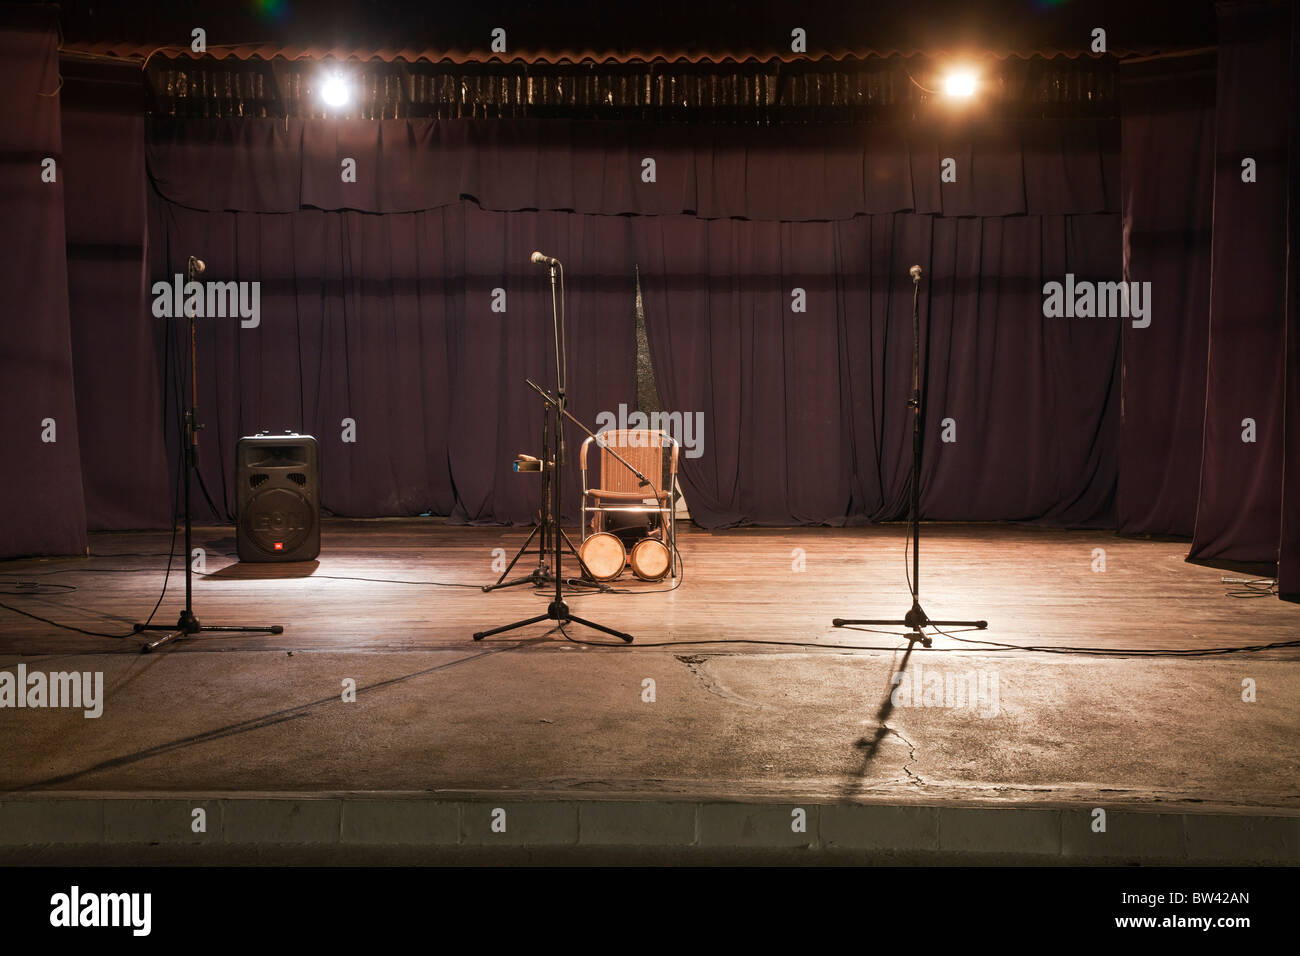 Empty stage - Stock Image